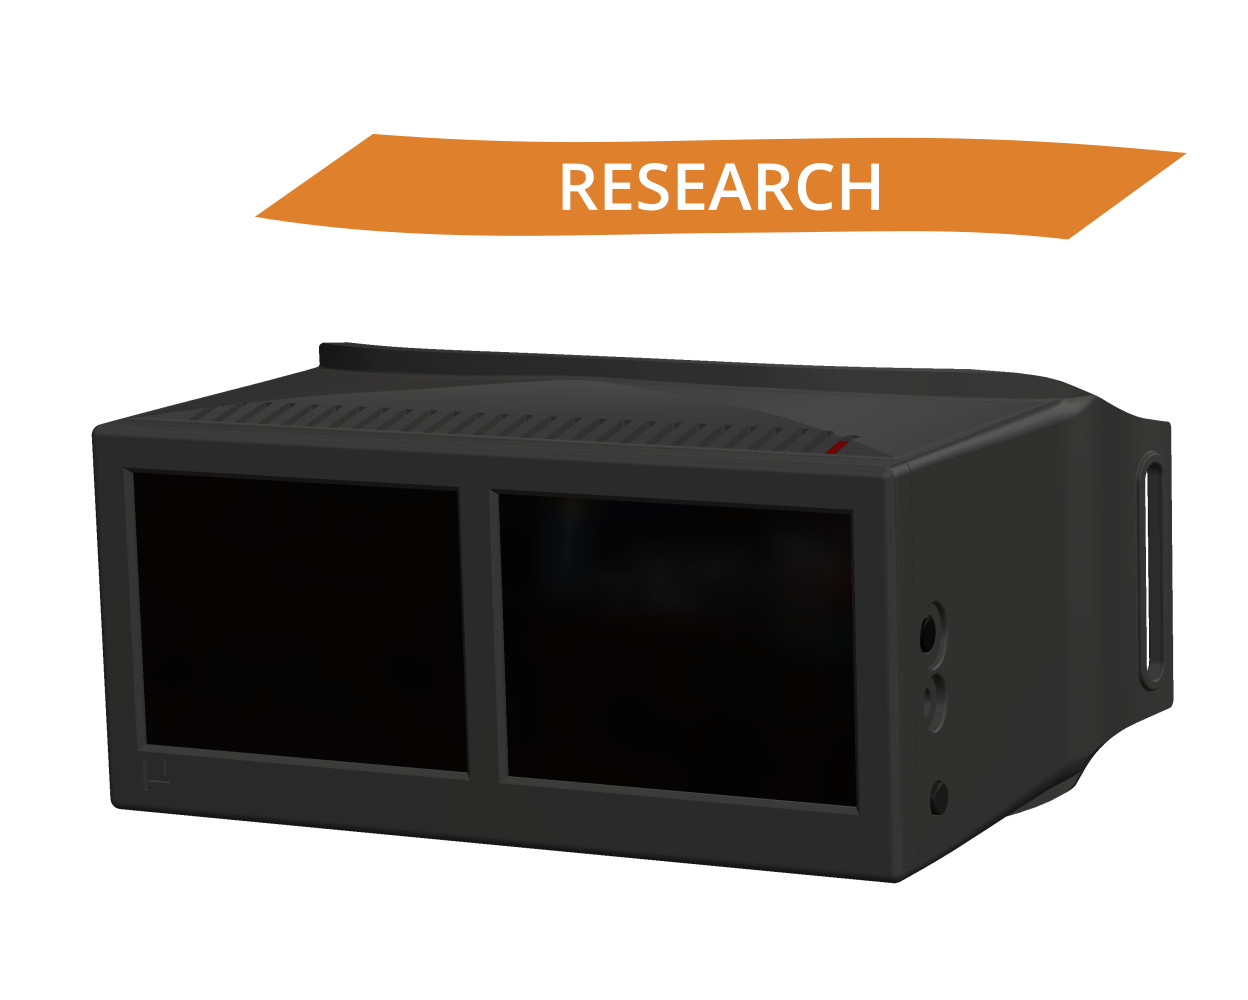 μFrenzel® Video Goggles - Research